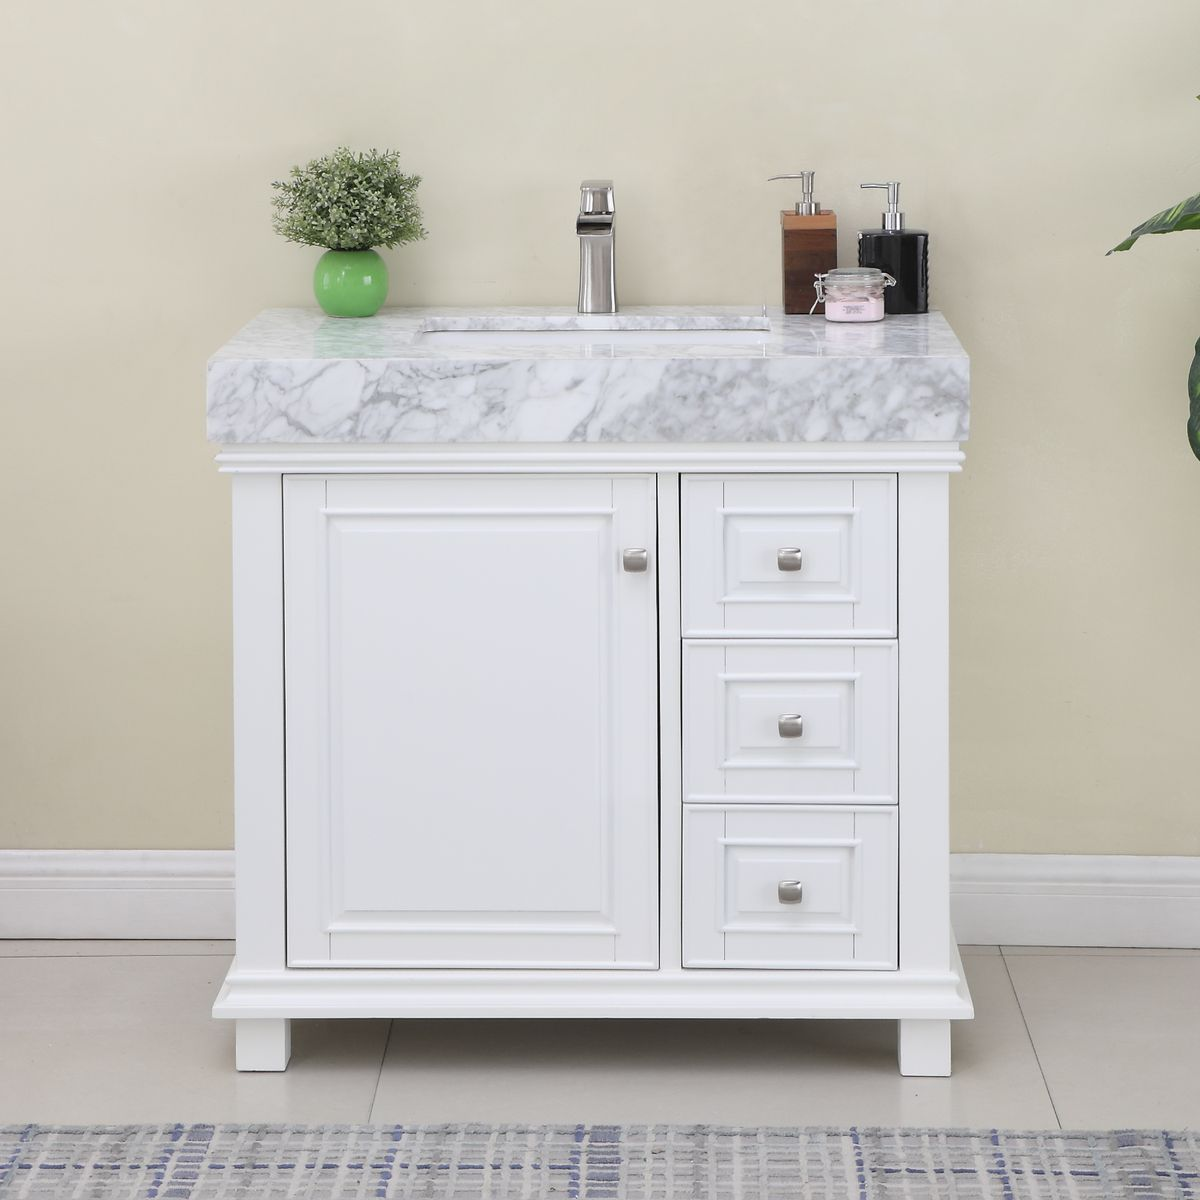 "Issac Edwards Collection 36"" Single Bathroom Vanity Set in White and Carrara White Marble Countertop without Mirror"